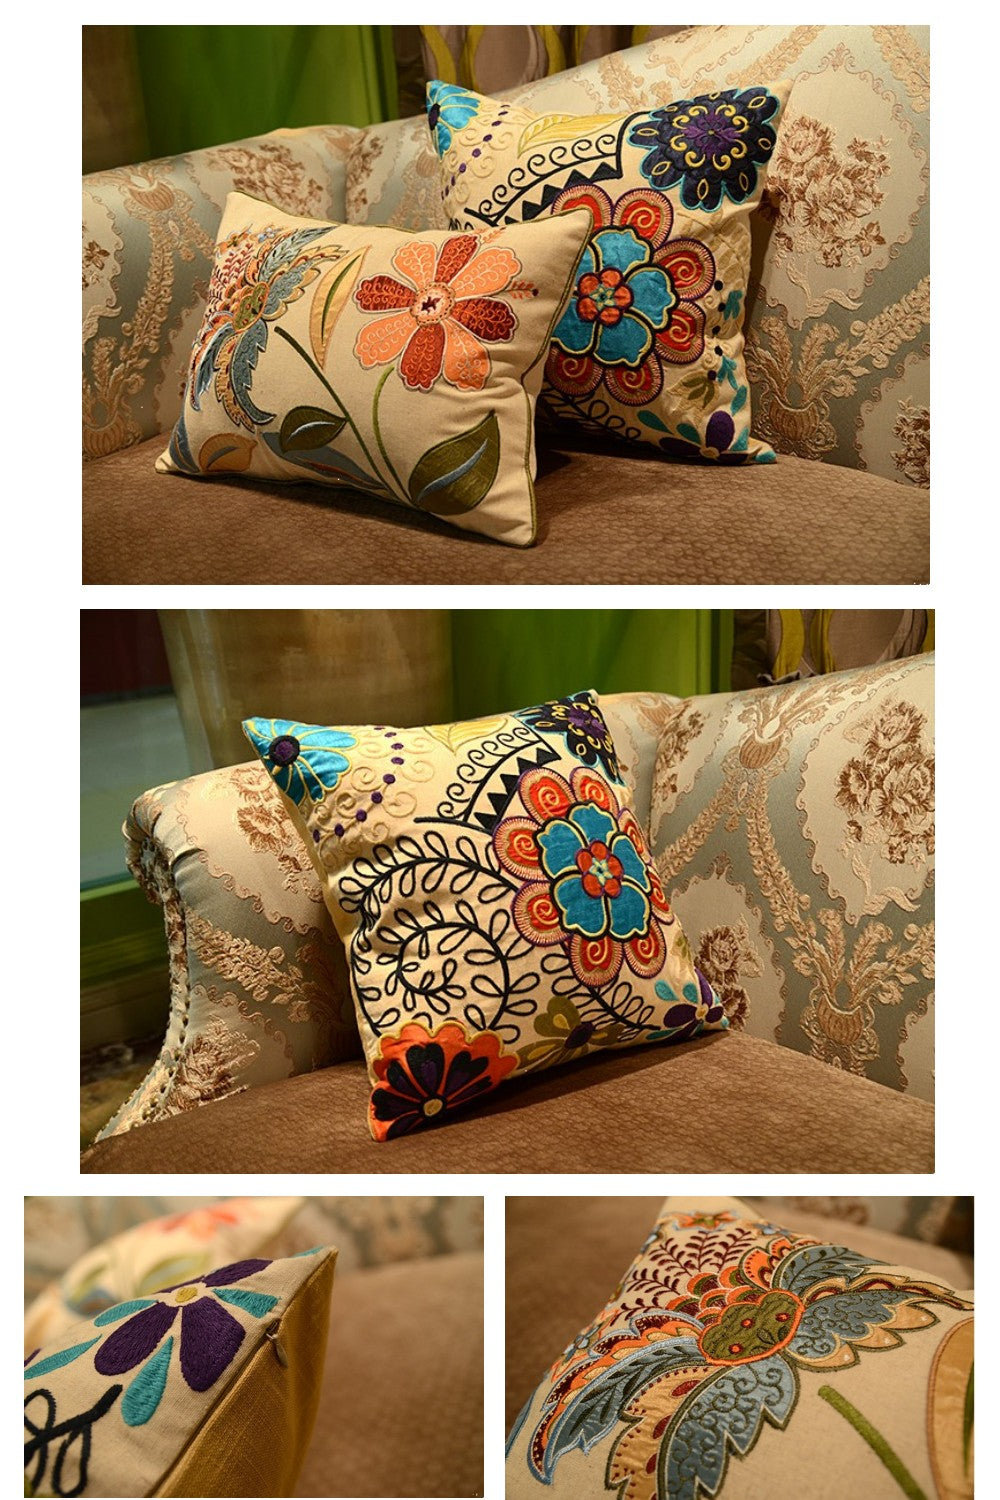 Flower Cotton and linen Embroider Pillow Cover, Decorative Throw Pillow, Sofa Pillows